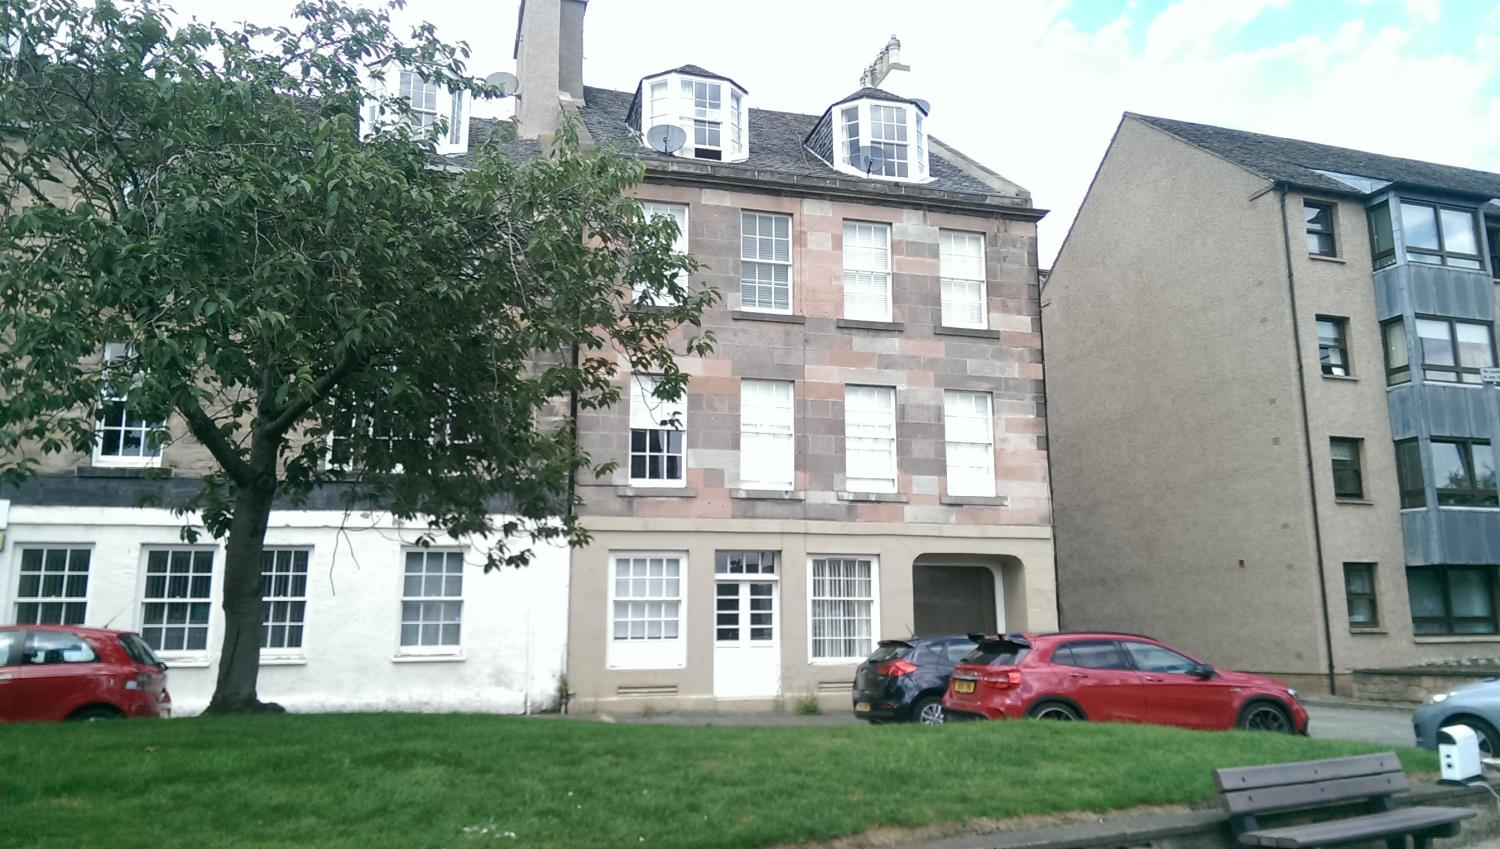 View property for rent High Street, Dalkeith